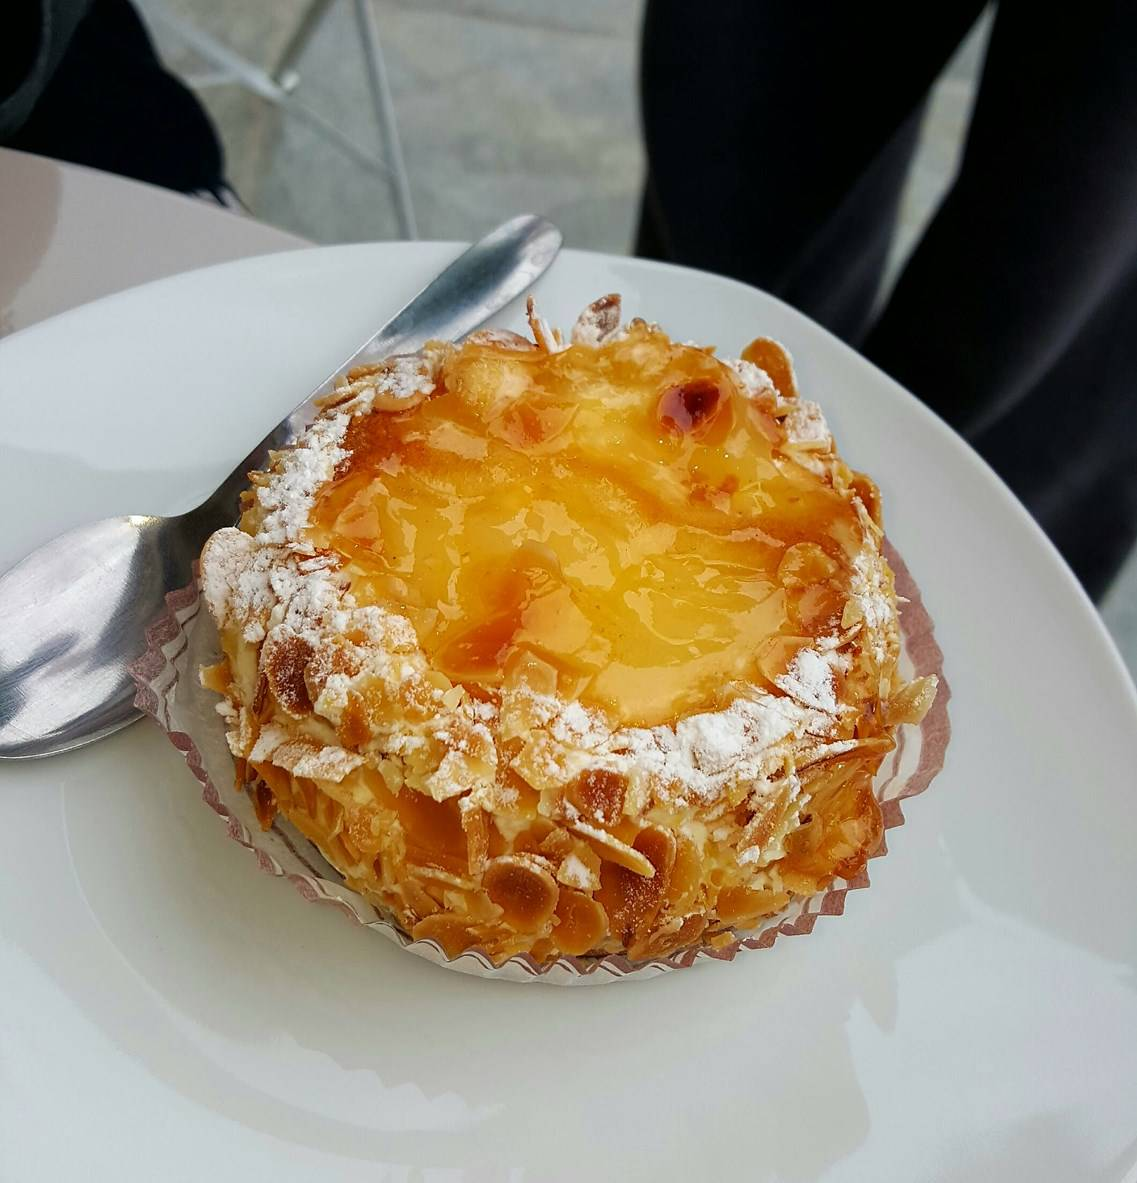 French Alps Trip Report: Yummy pastries!